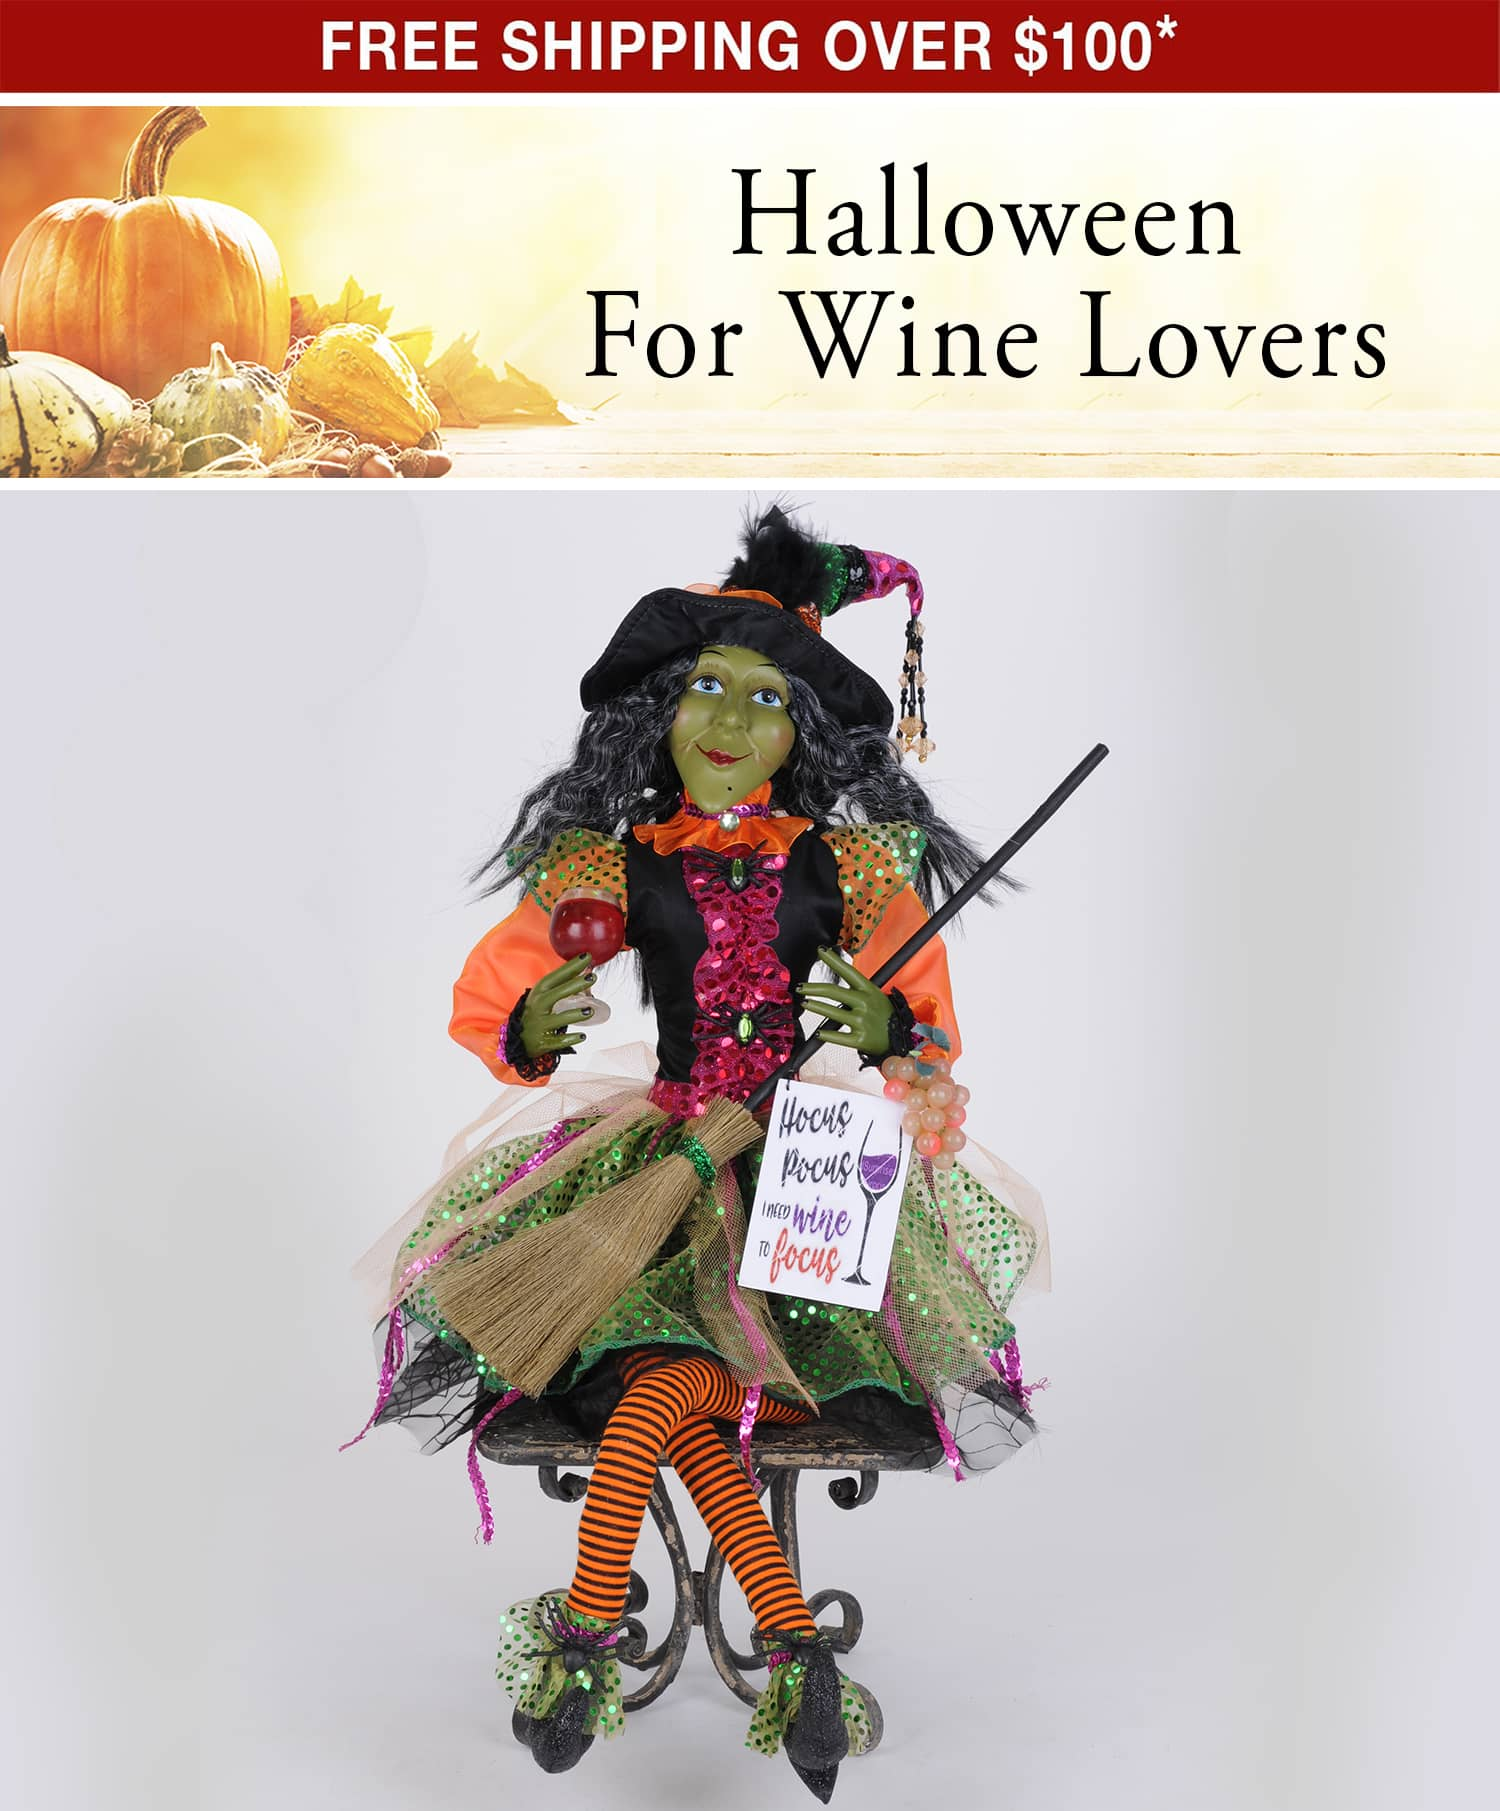 Halloween For Wine Lovers - Free Shipping Over $100*